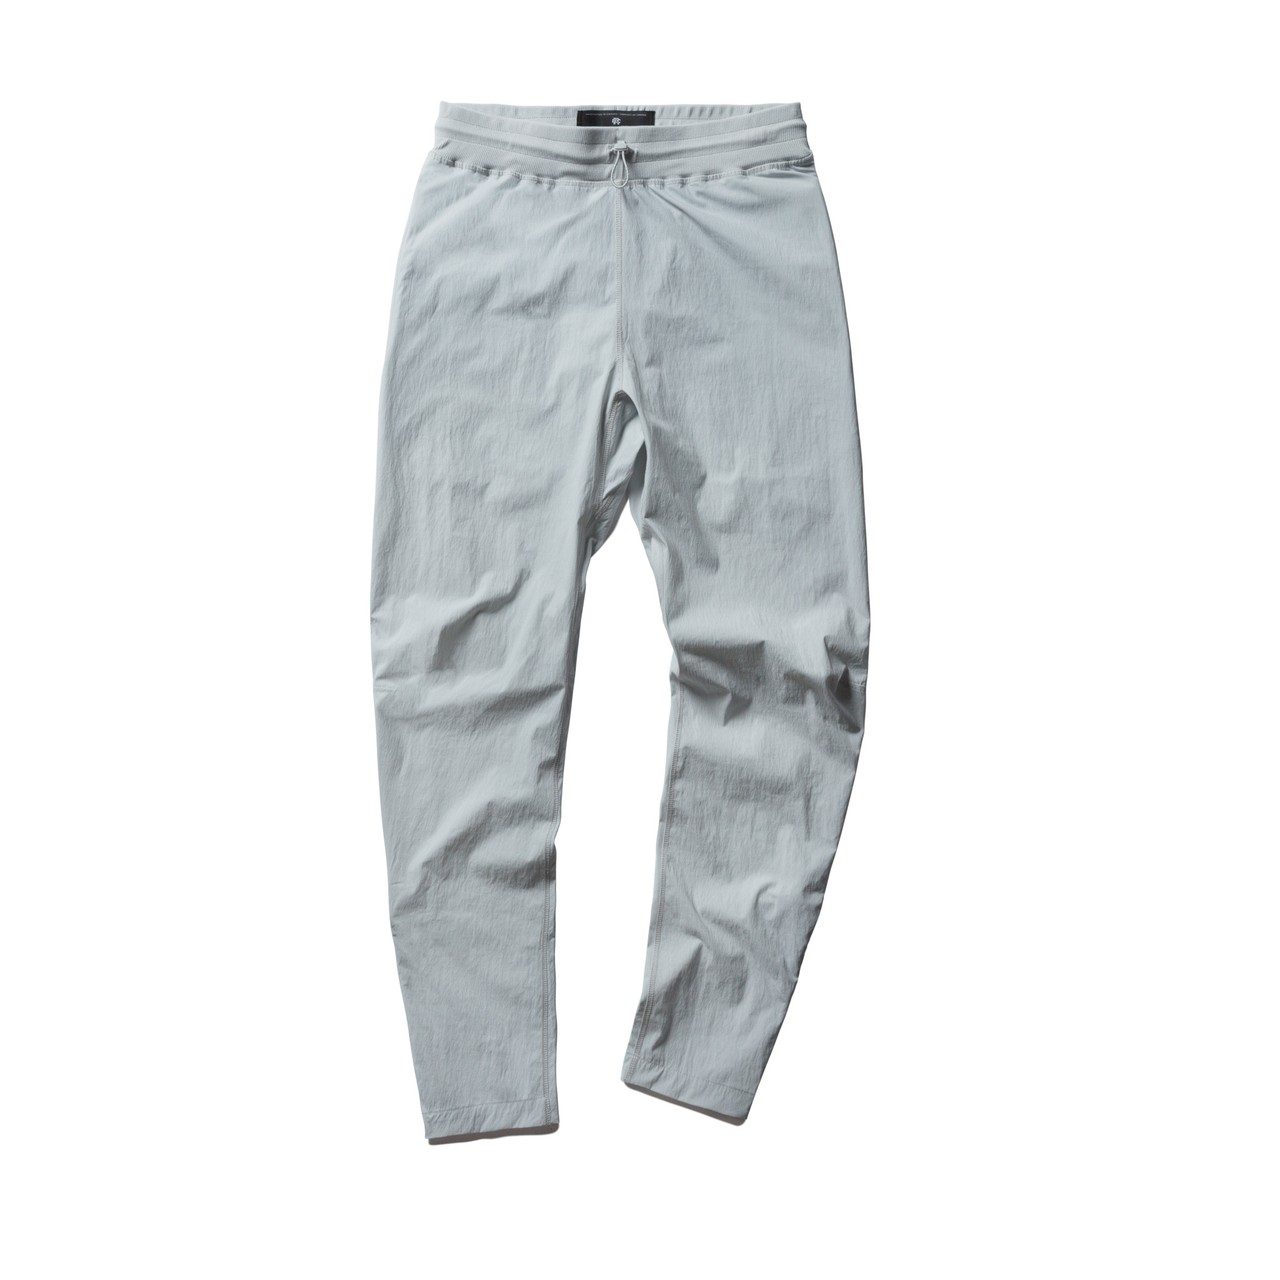 Reigning Champ Stretch Nylon Pant in SkyGrey